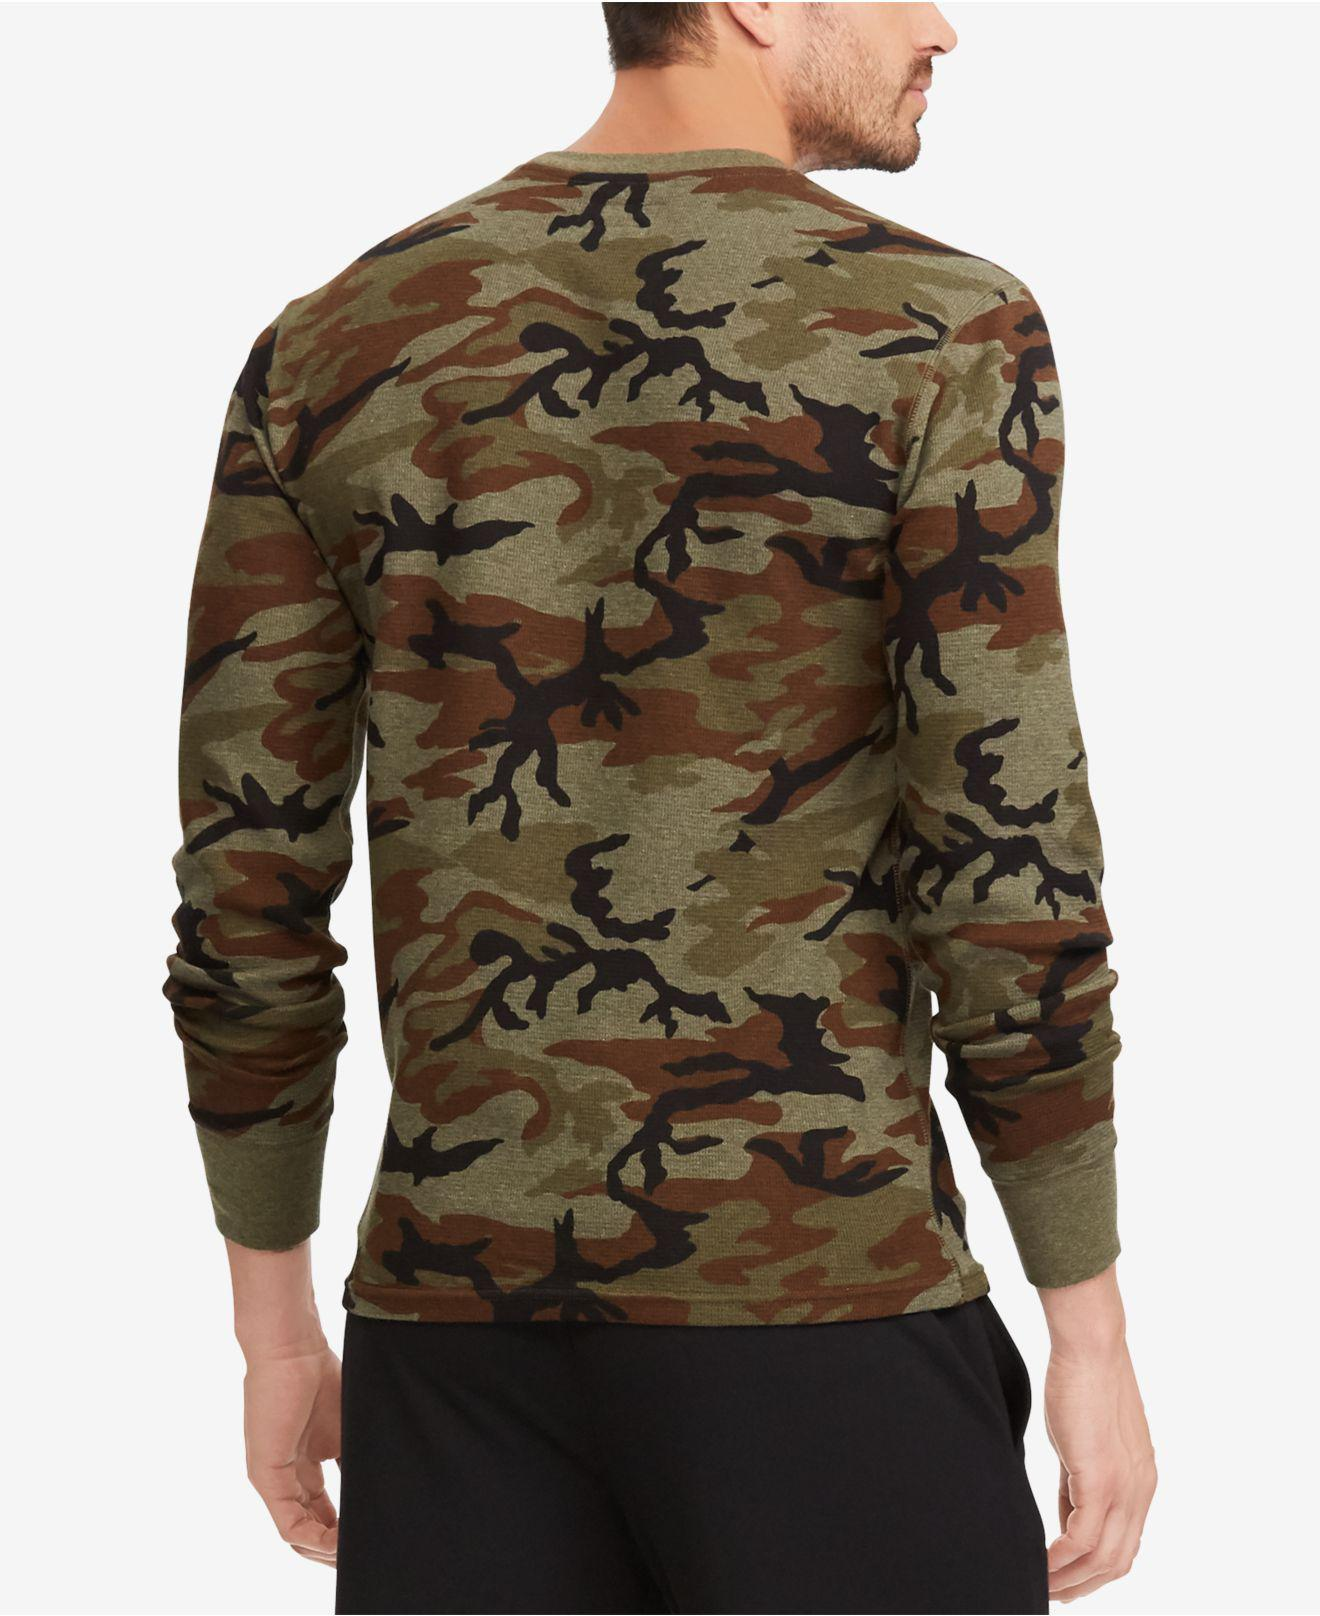 397c14952 Lyst - Polo Ralph Lauren Camo Print Waffle-knit Thermal in Green for Men